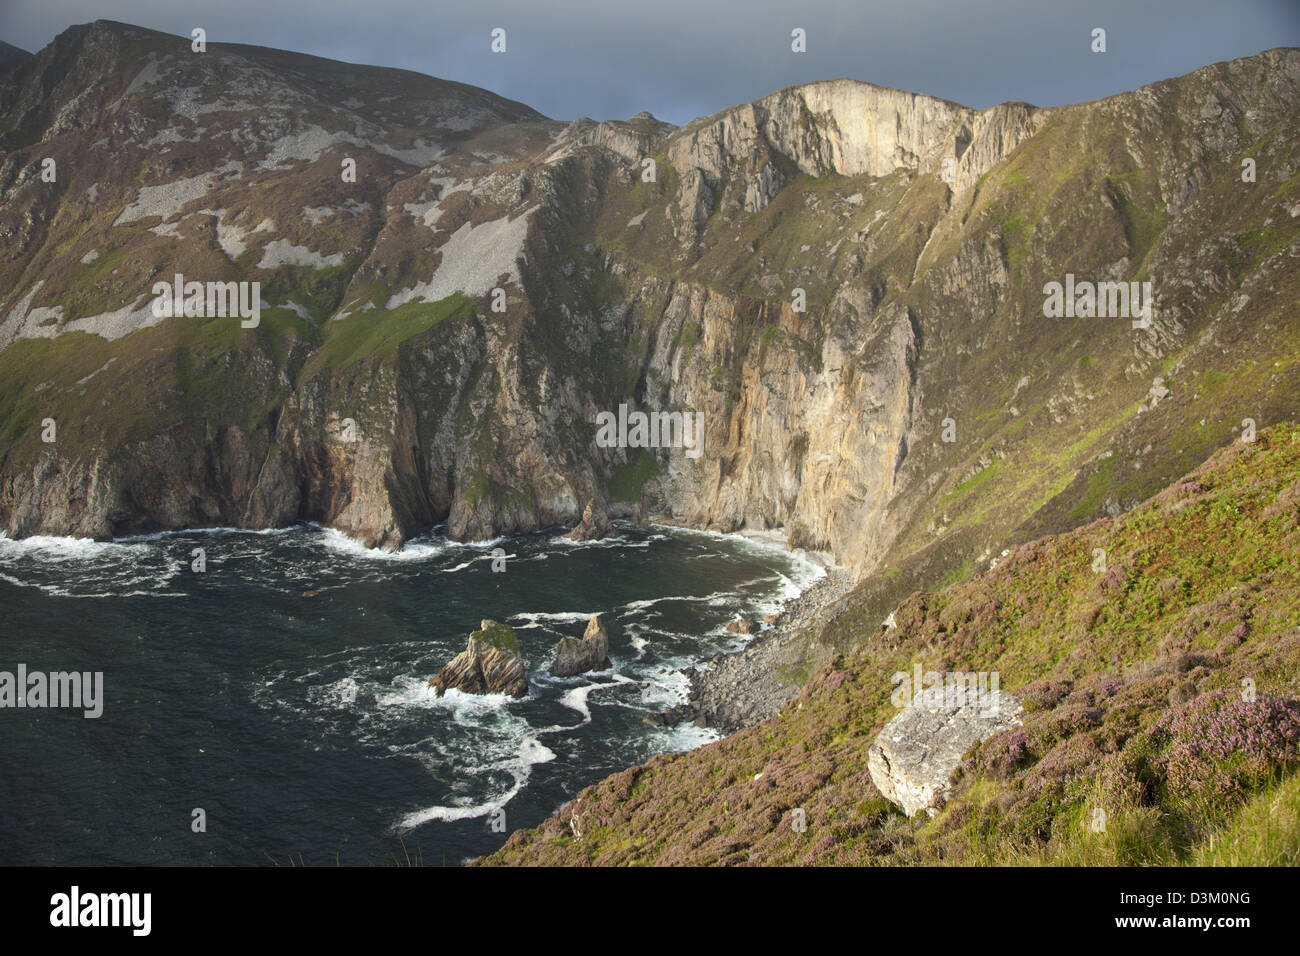 View across the Slieve League cliffs from Bunglas, County Donegal, Ireland. - Stock Image